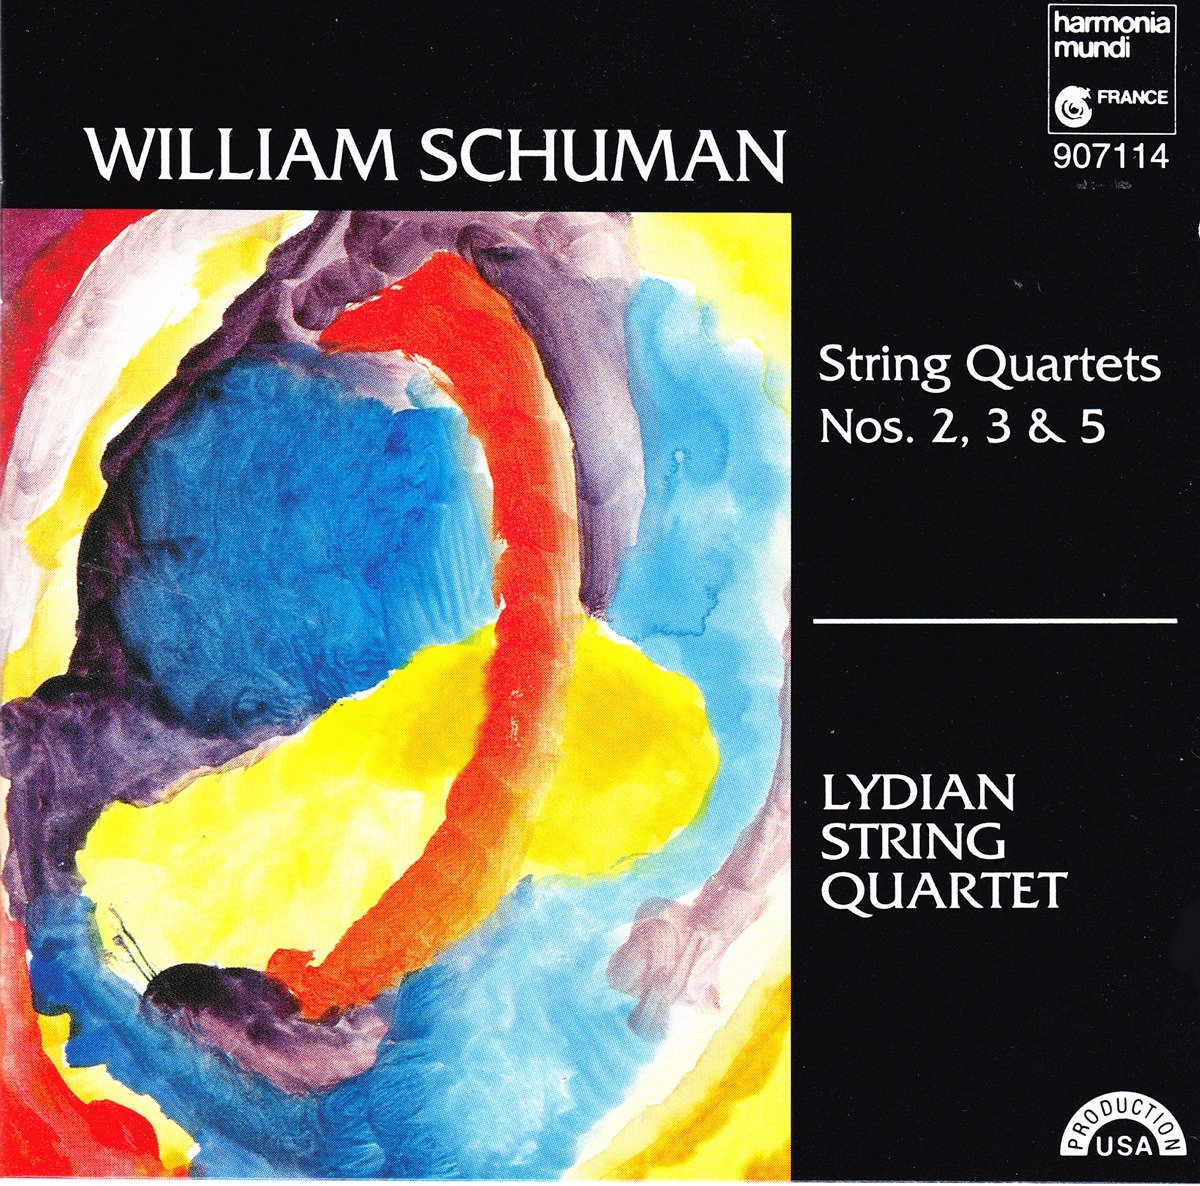 William Schuman: String Quartets No. 2, No. 3, No. 5